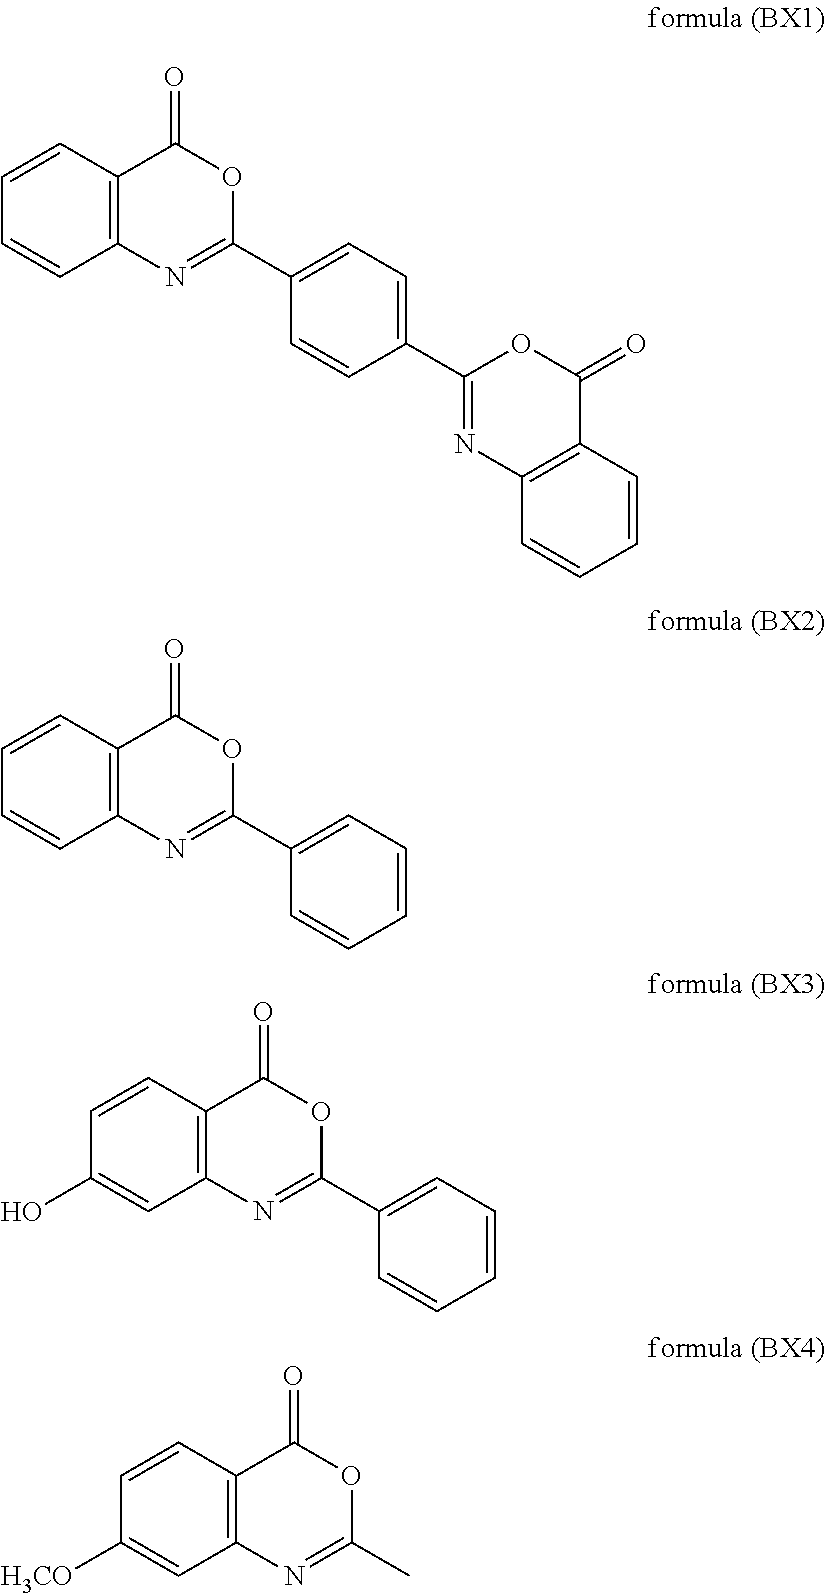 Us20170292022a1 Sulfone Polymer Composition Google Patents